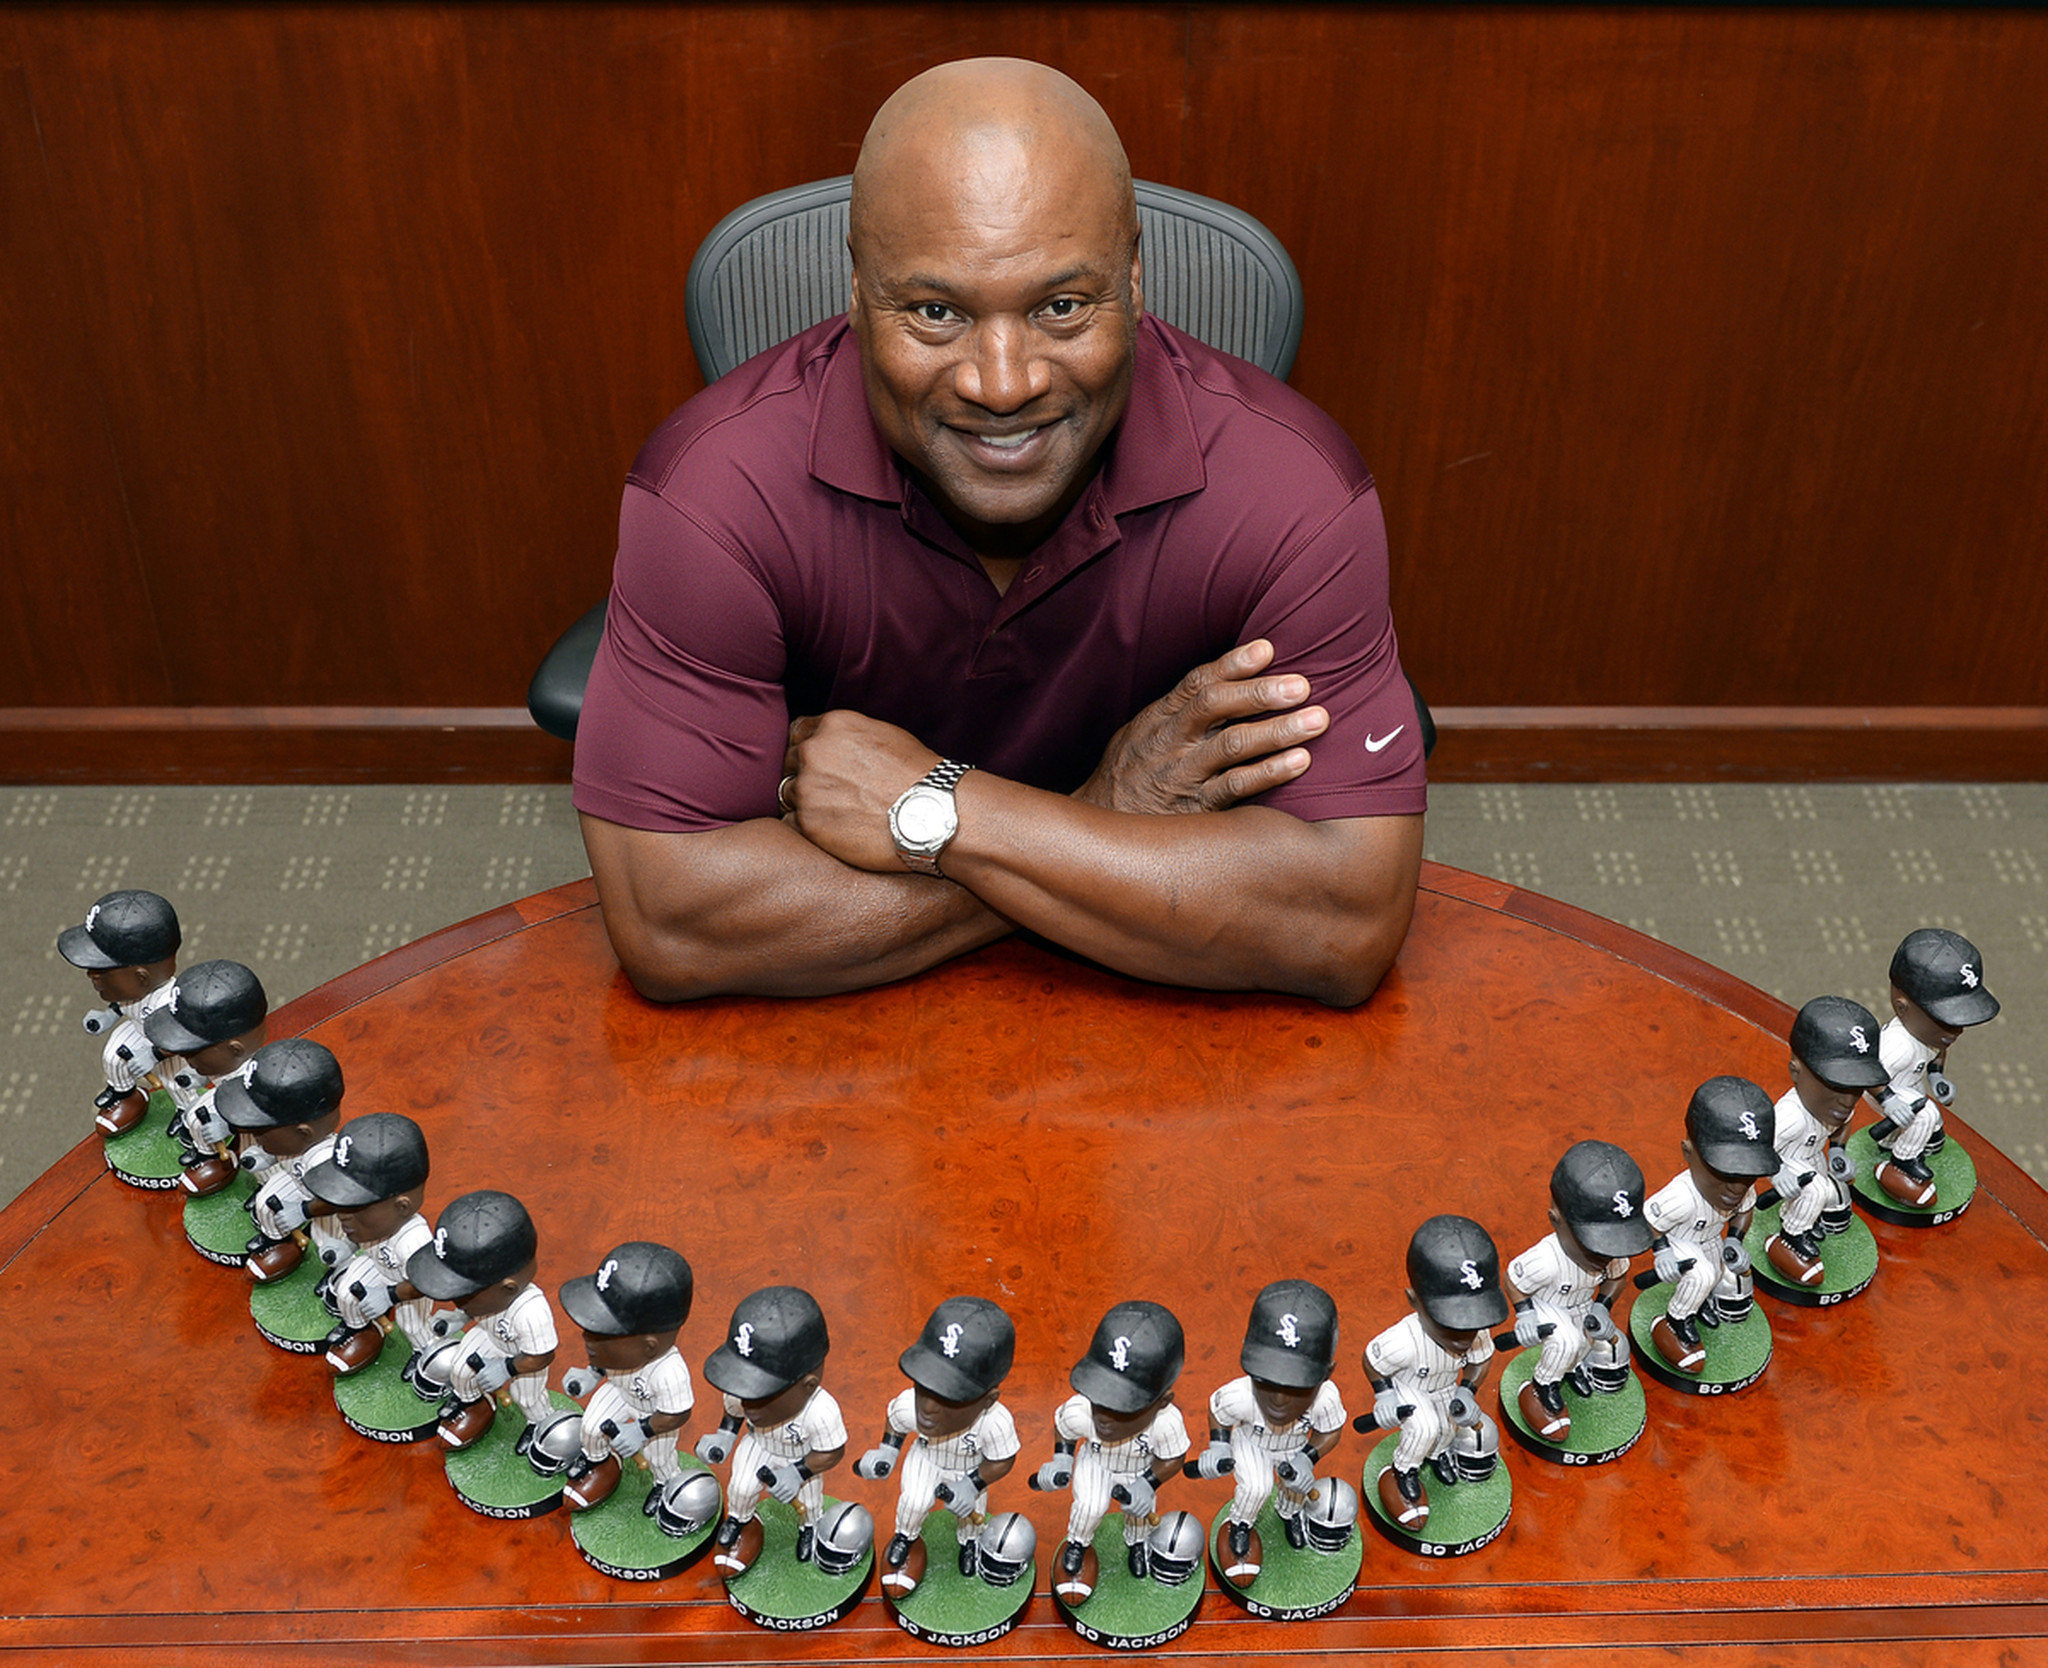 now bo jackson also knows bobbleheads